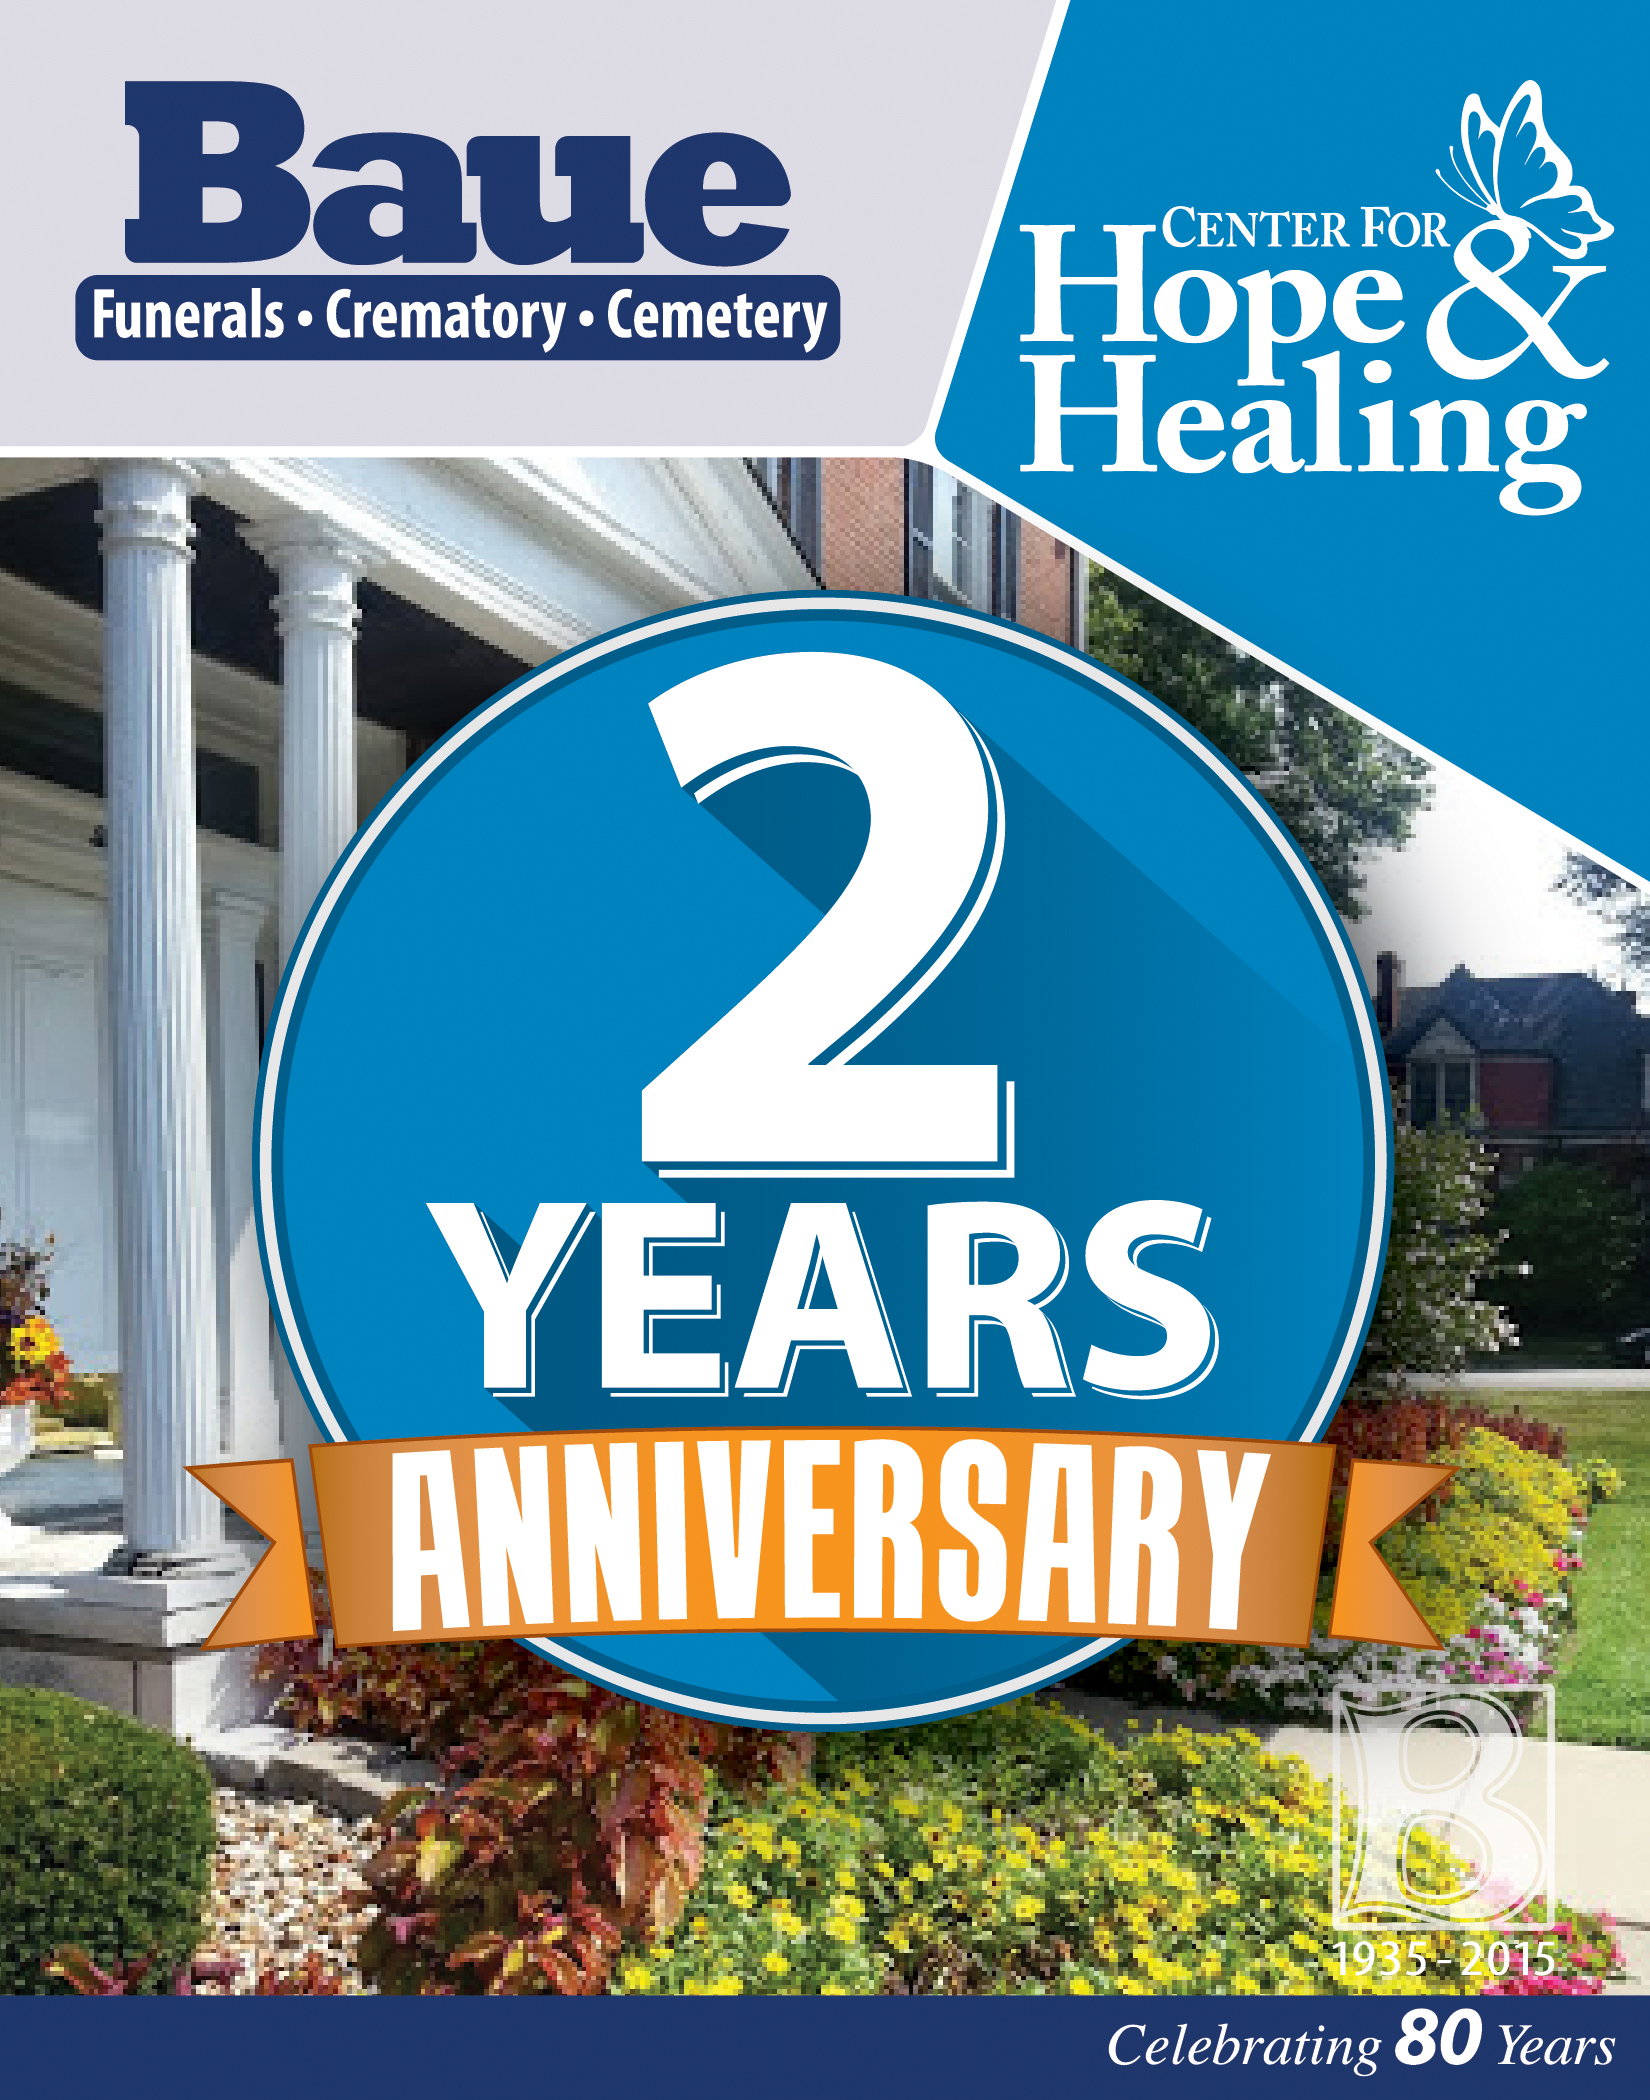 2 Year Anniversary for the Center for Hope & Healing